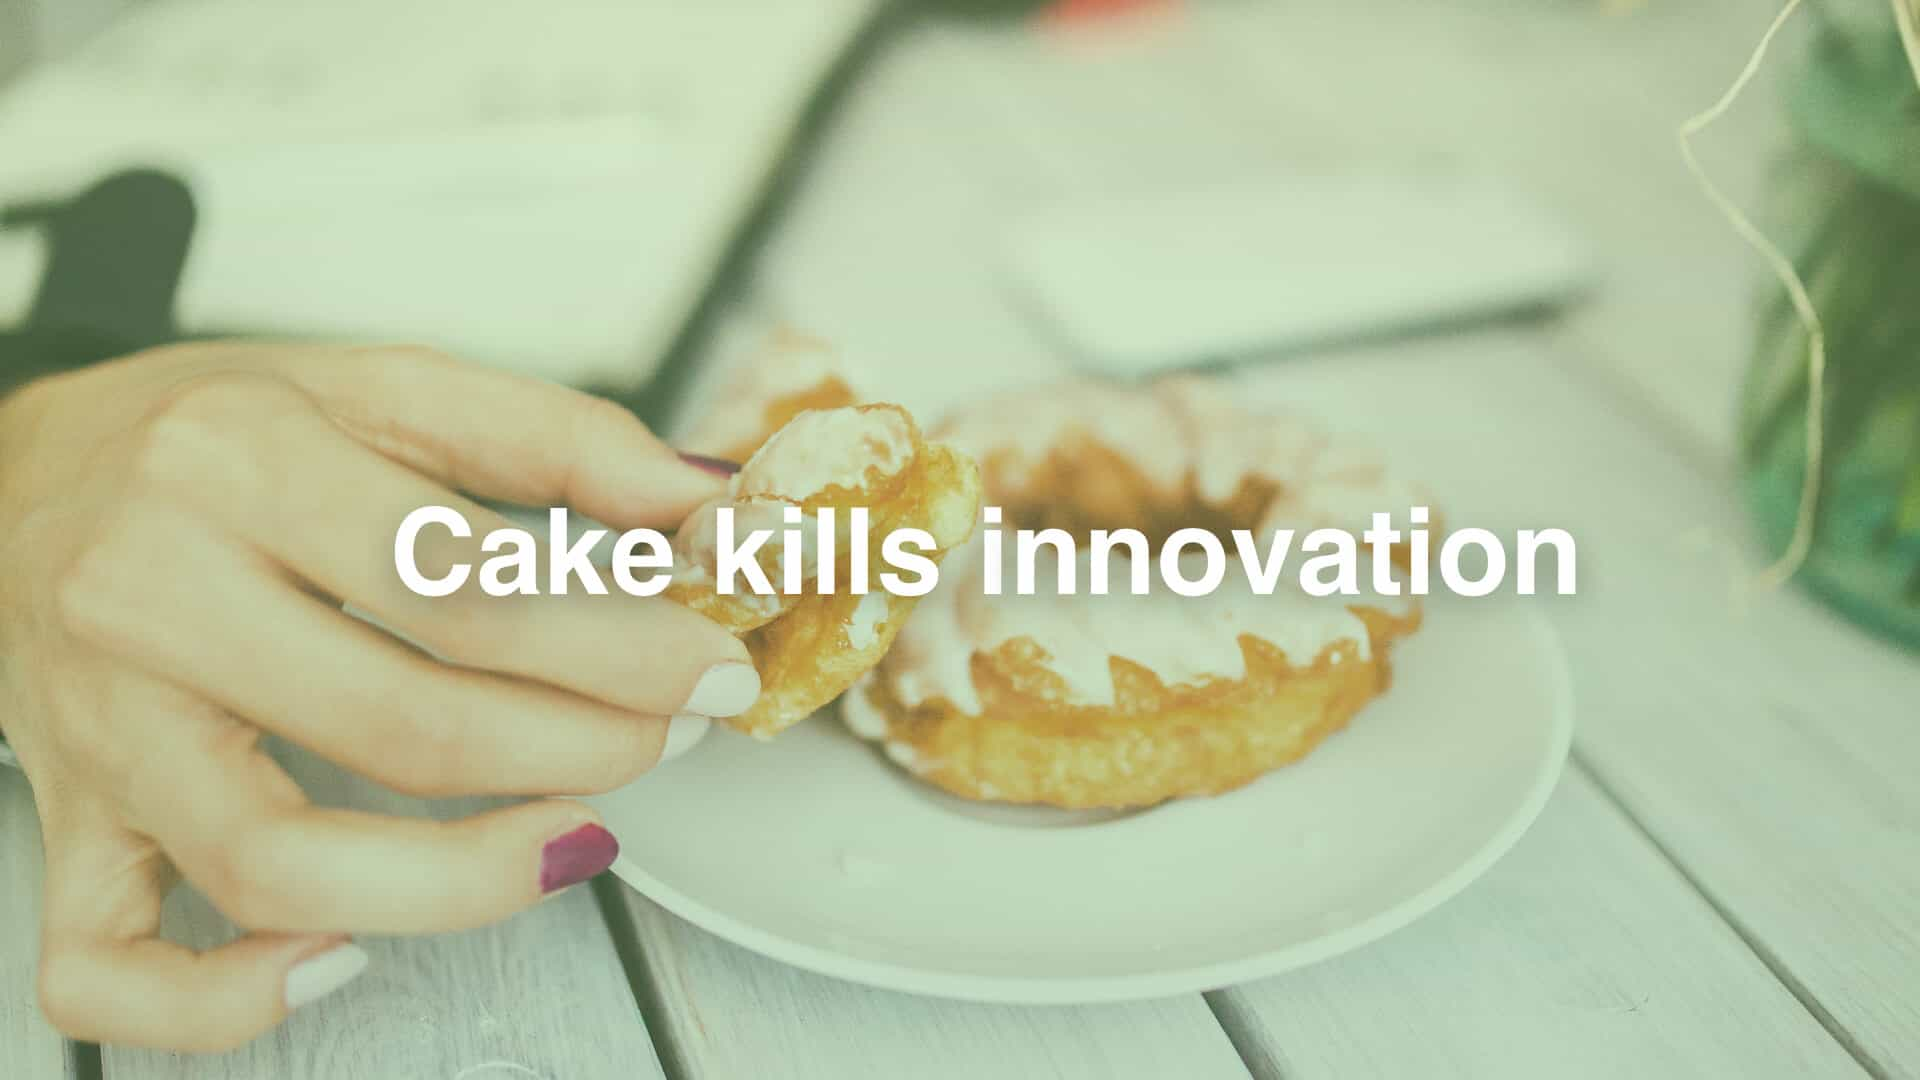 Why Having Cake at the Office Kills Innovation